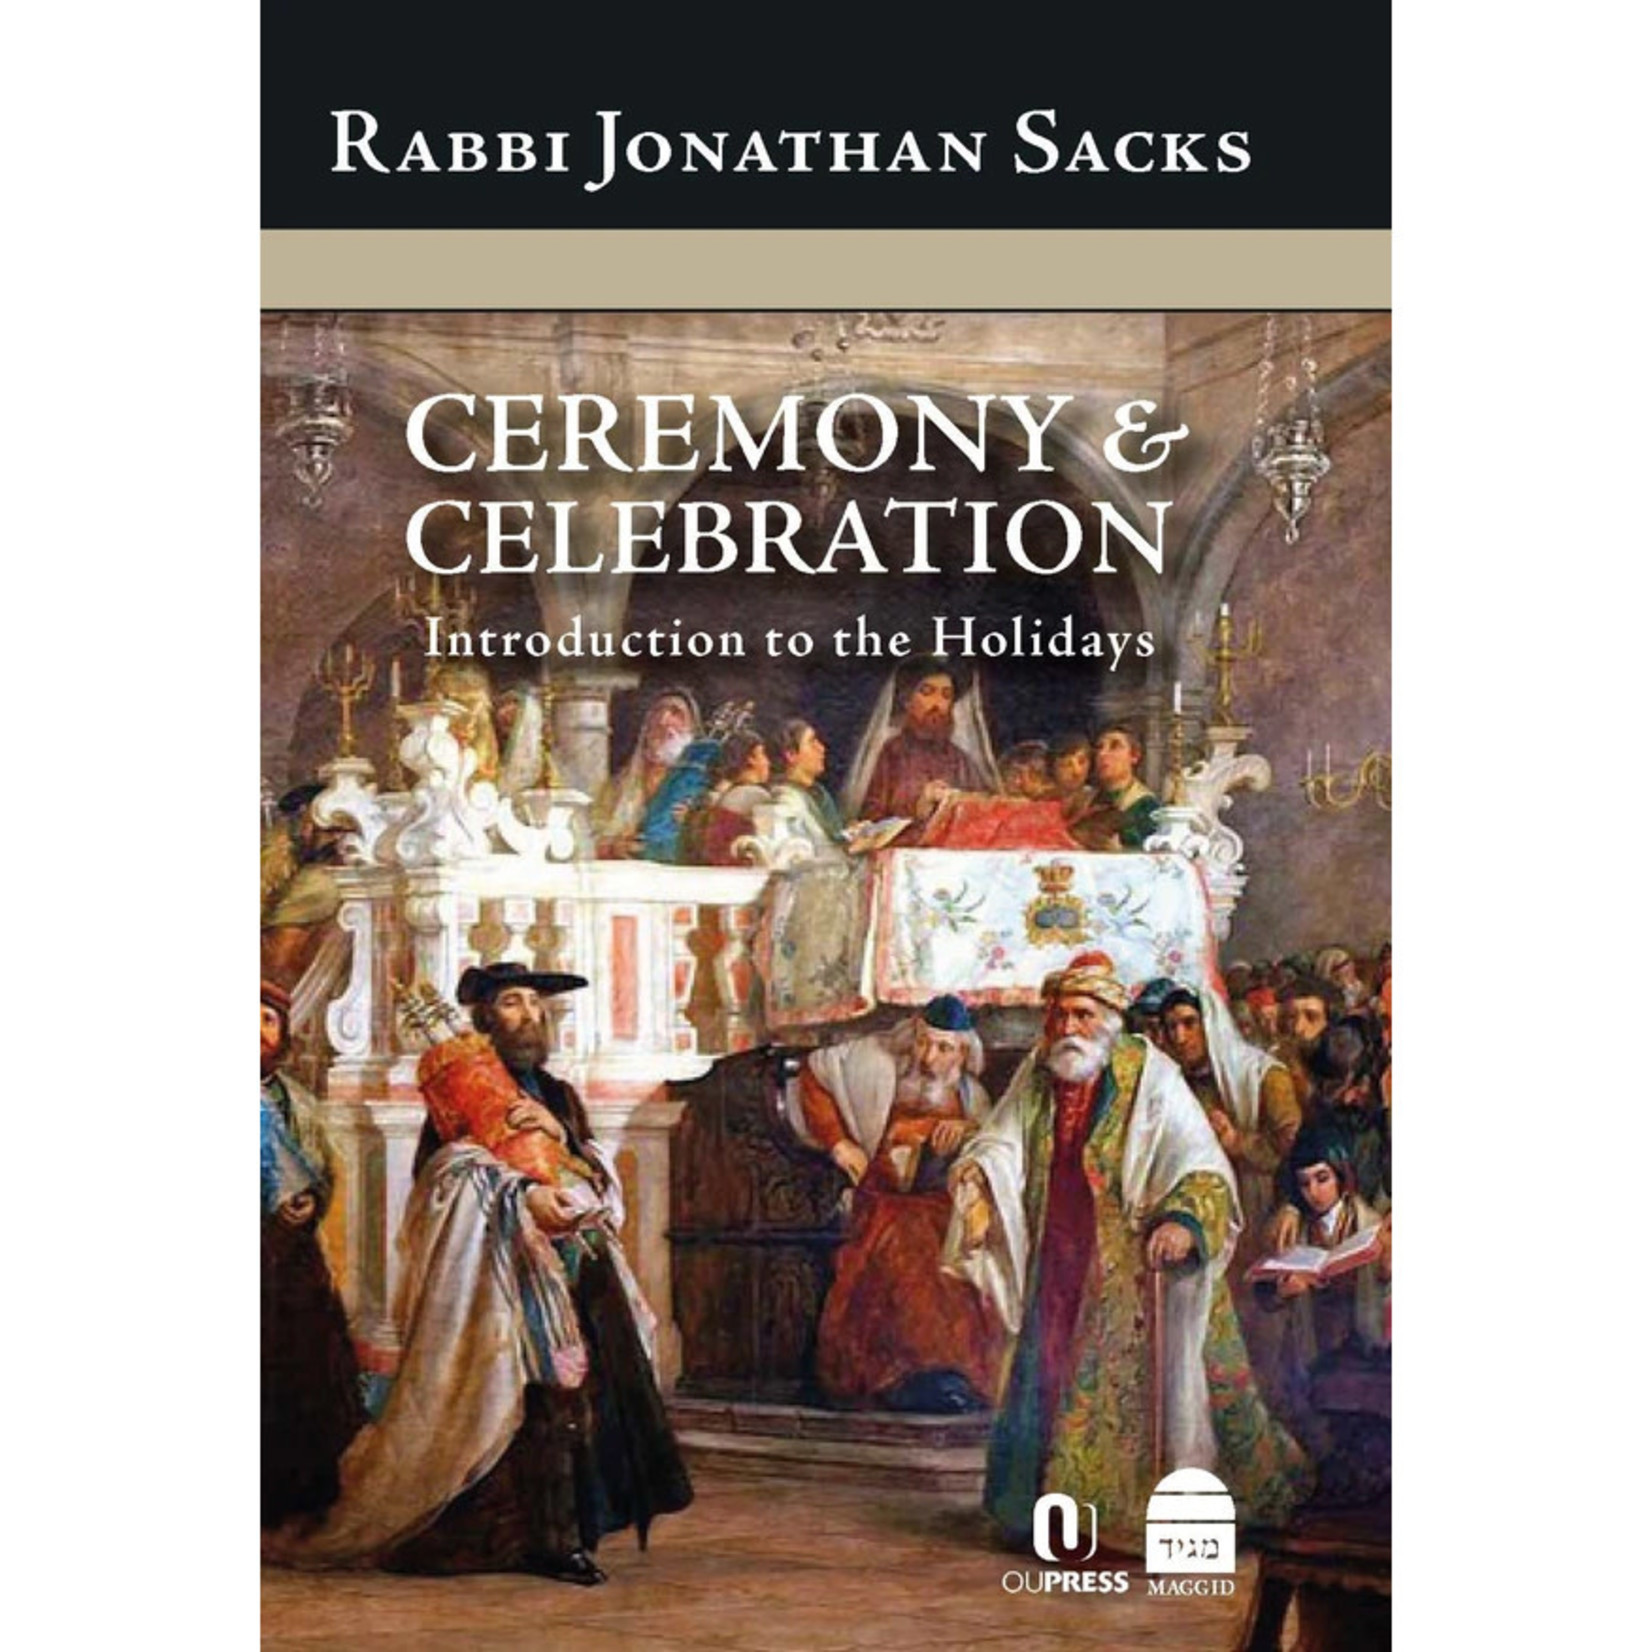 Rabbi Lord Jonathan Sacks Ceremony & Celebration: Introduction to the Holidays